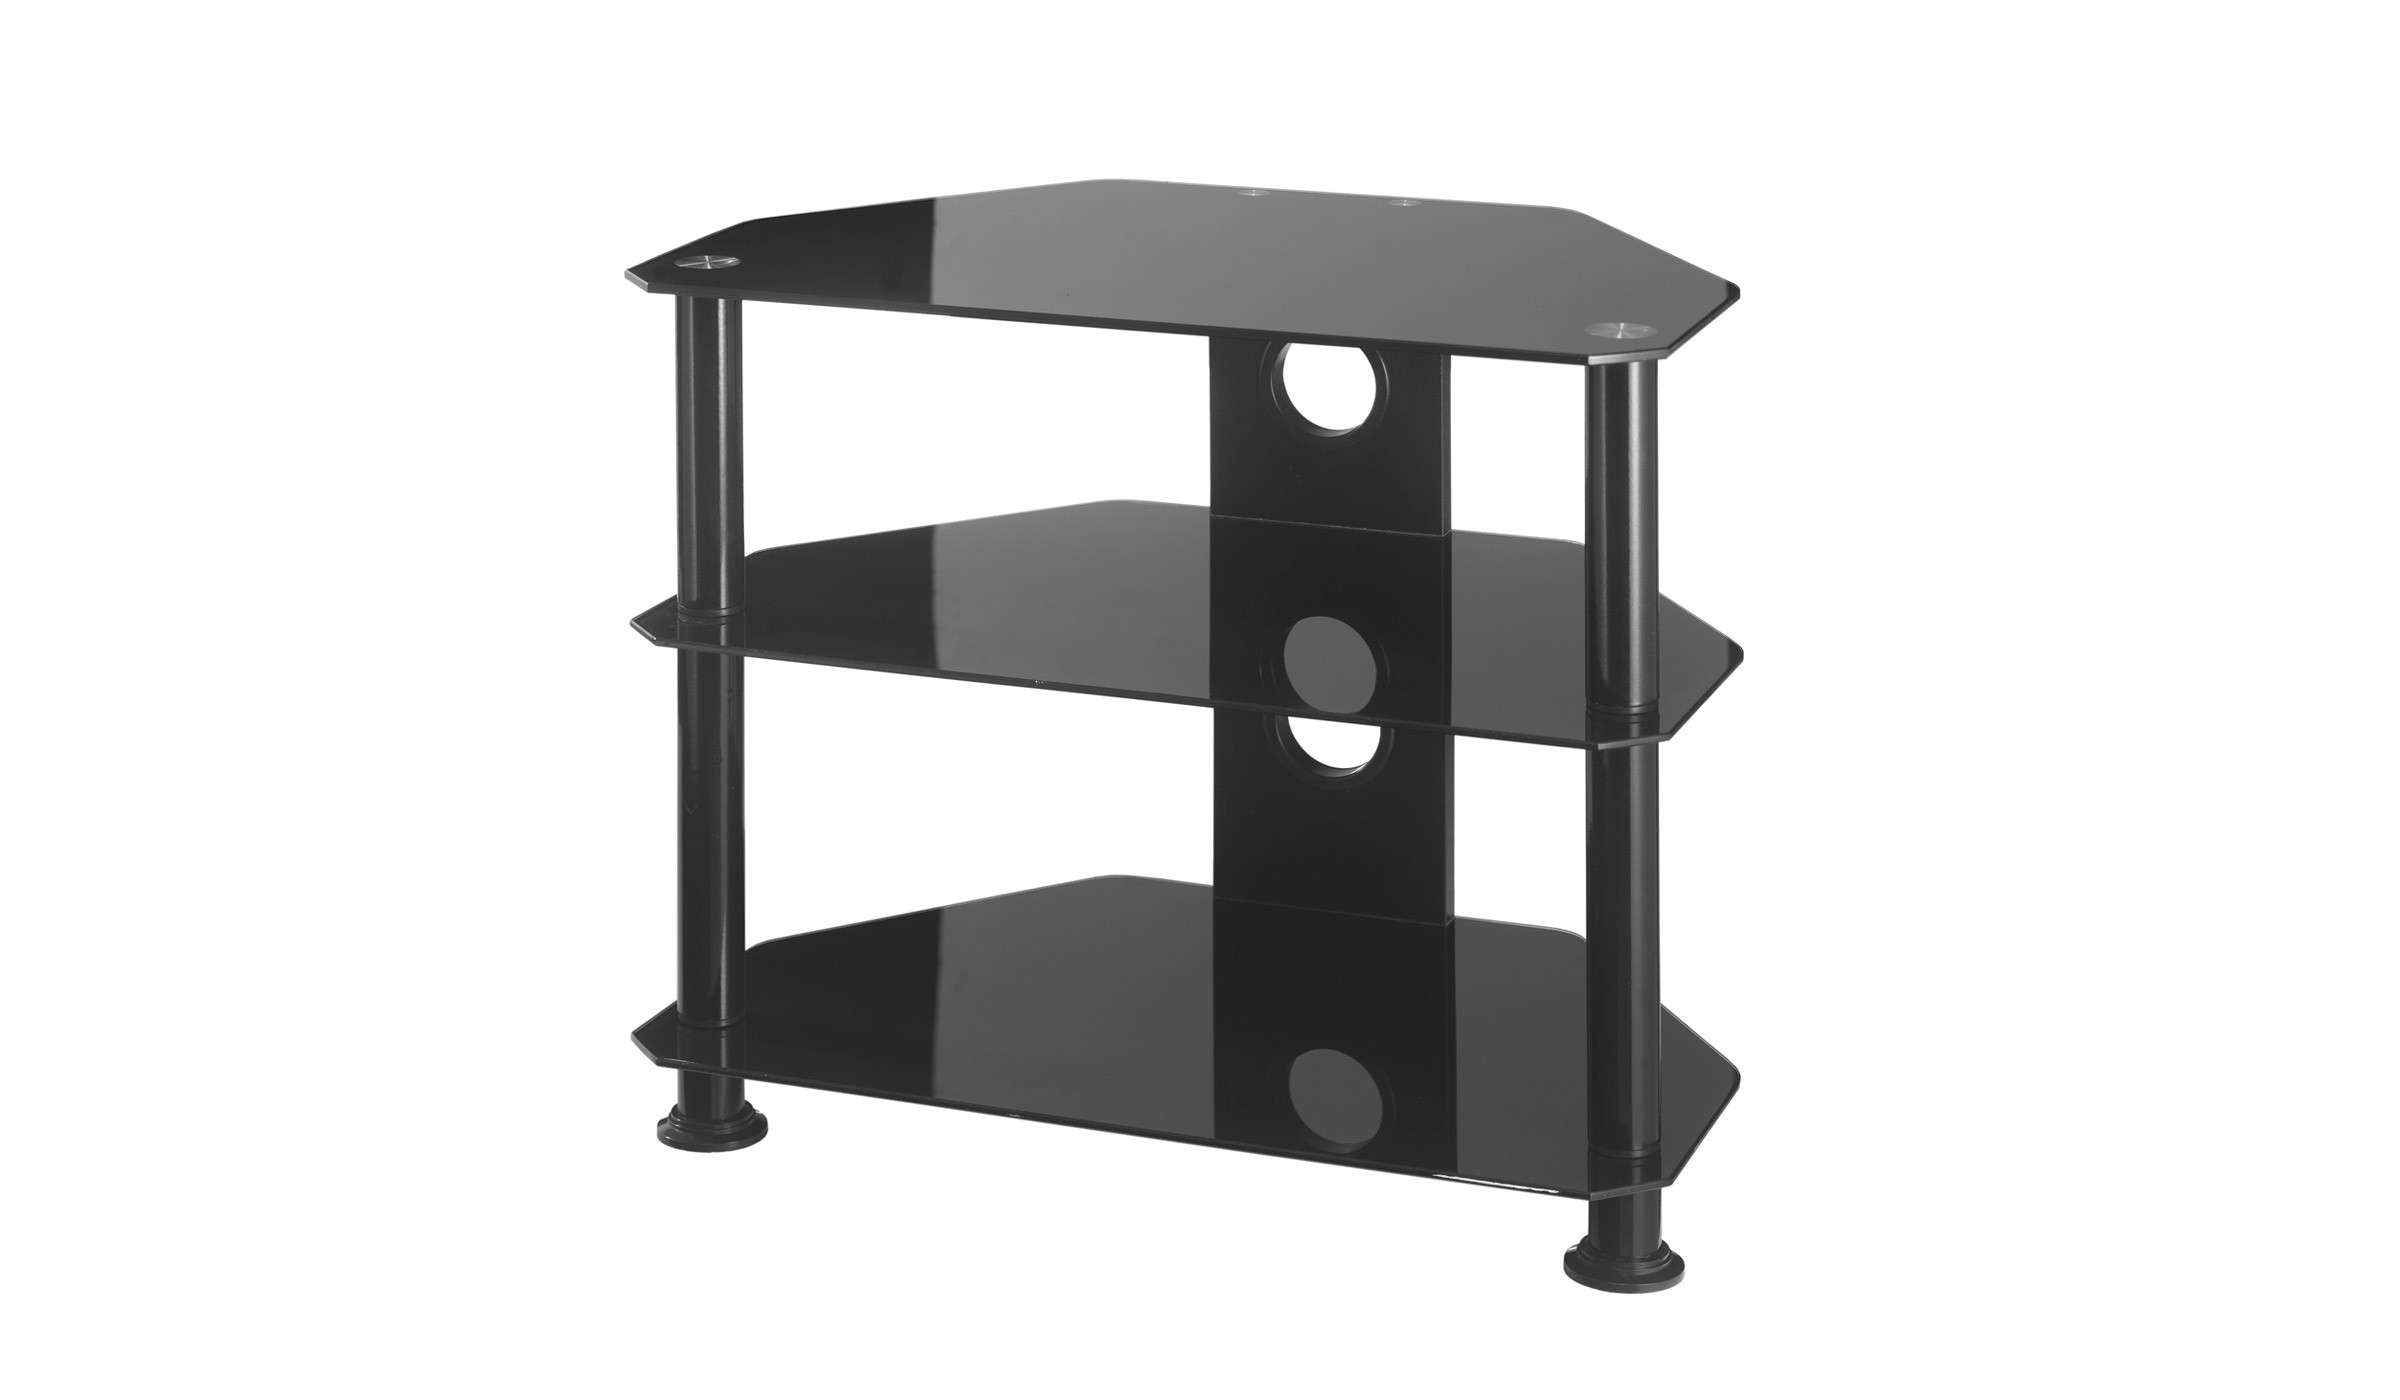 Small Glass Corner Tv Stand Up To 26 Inch Tv | Mmt Db600 With Regard To White Small Corner Tv Stands (View 4 of 15)